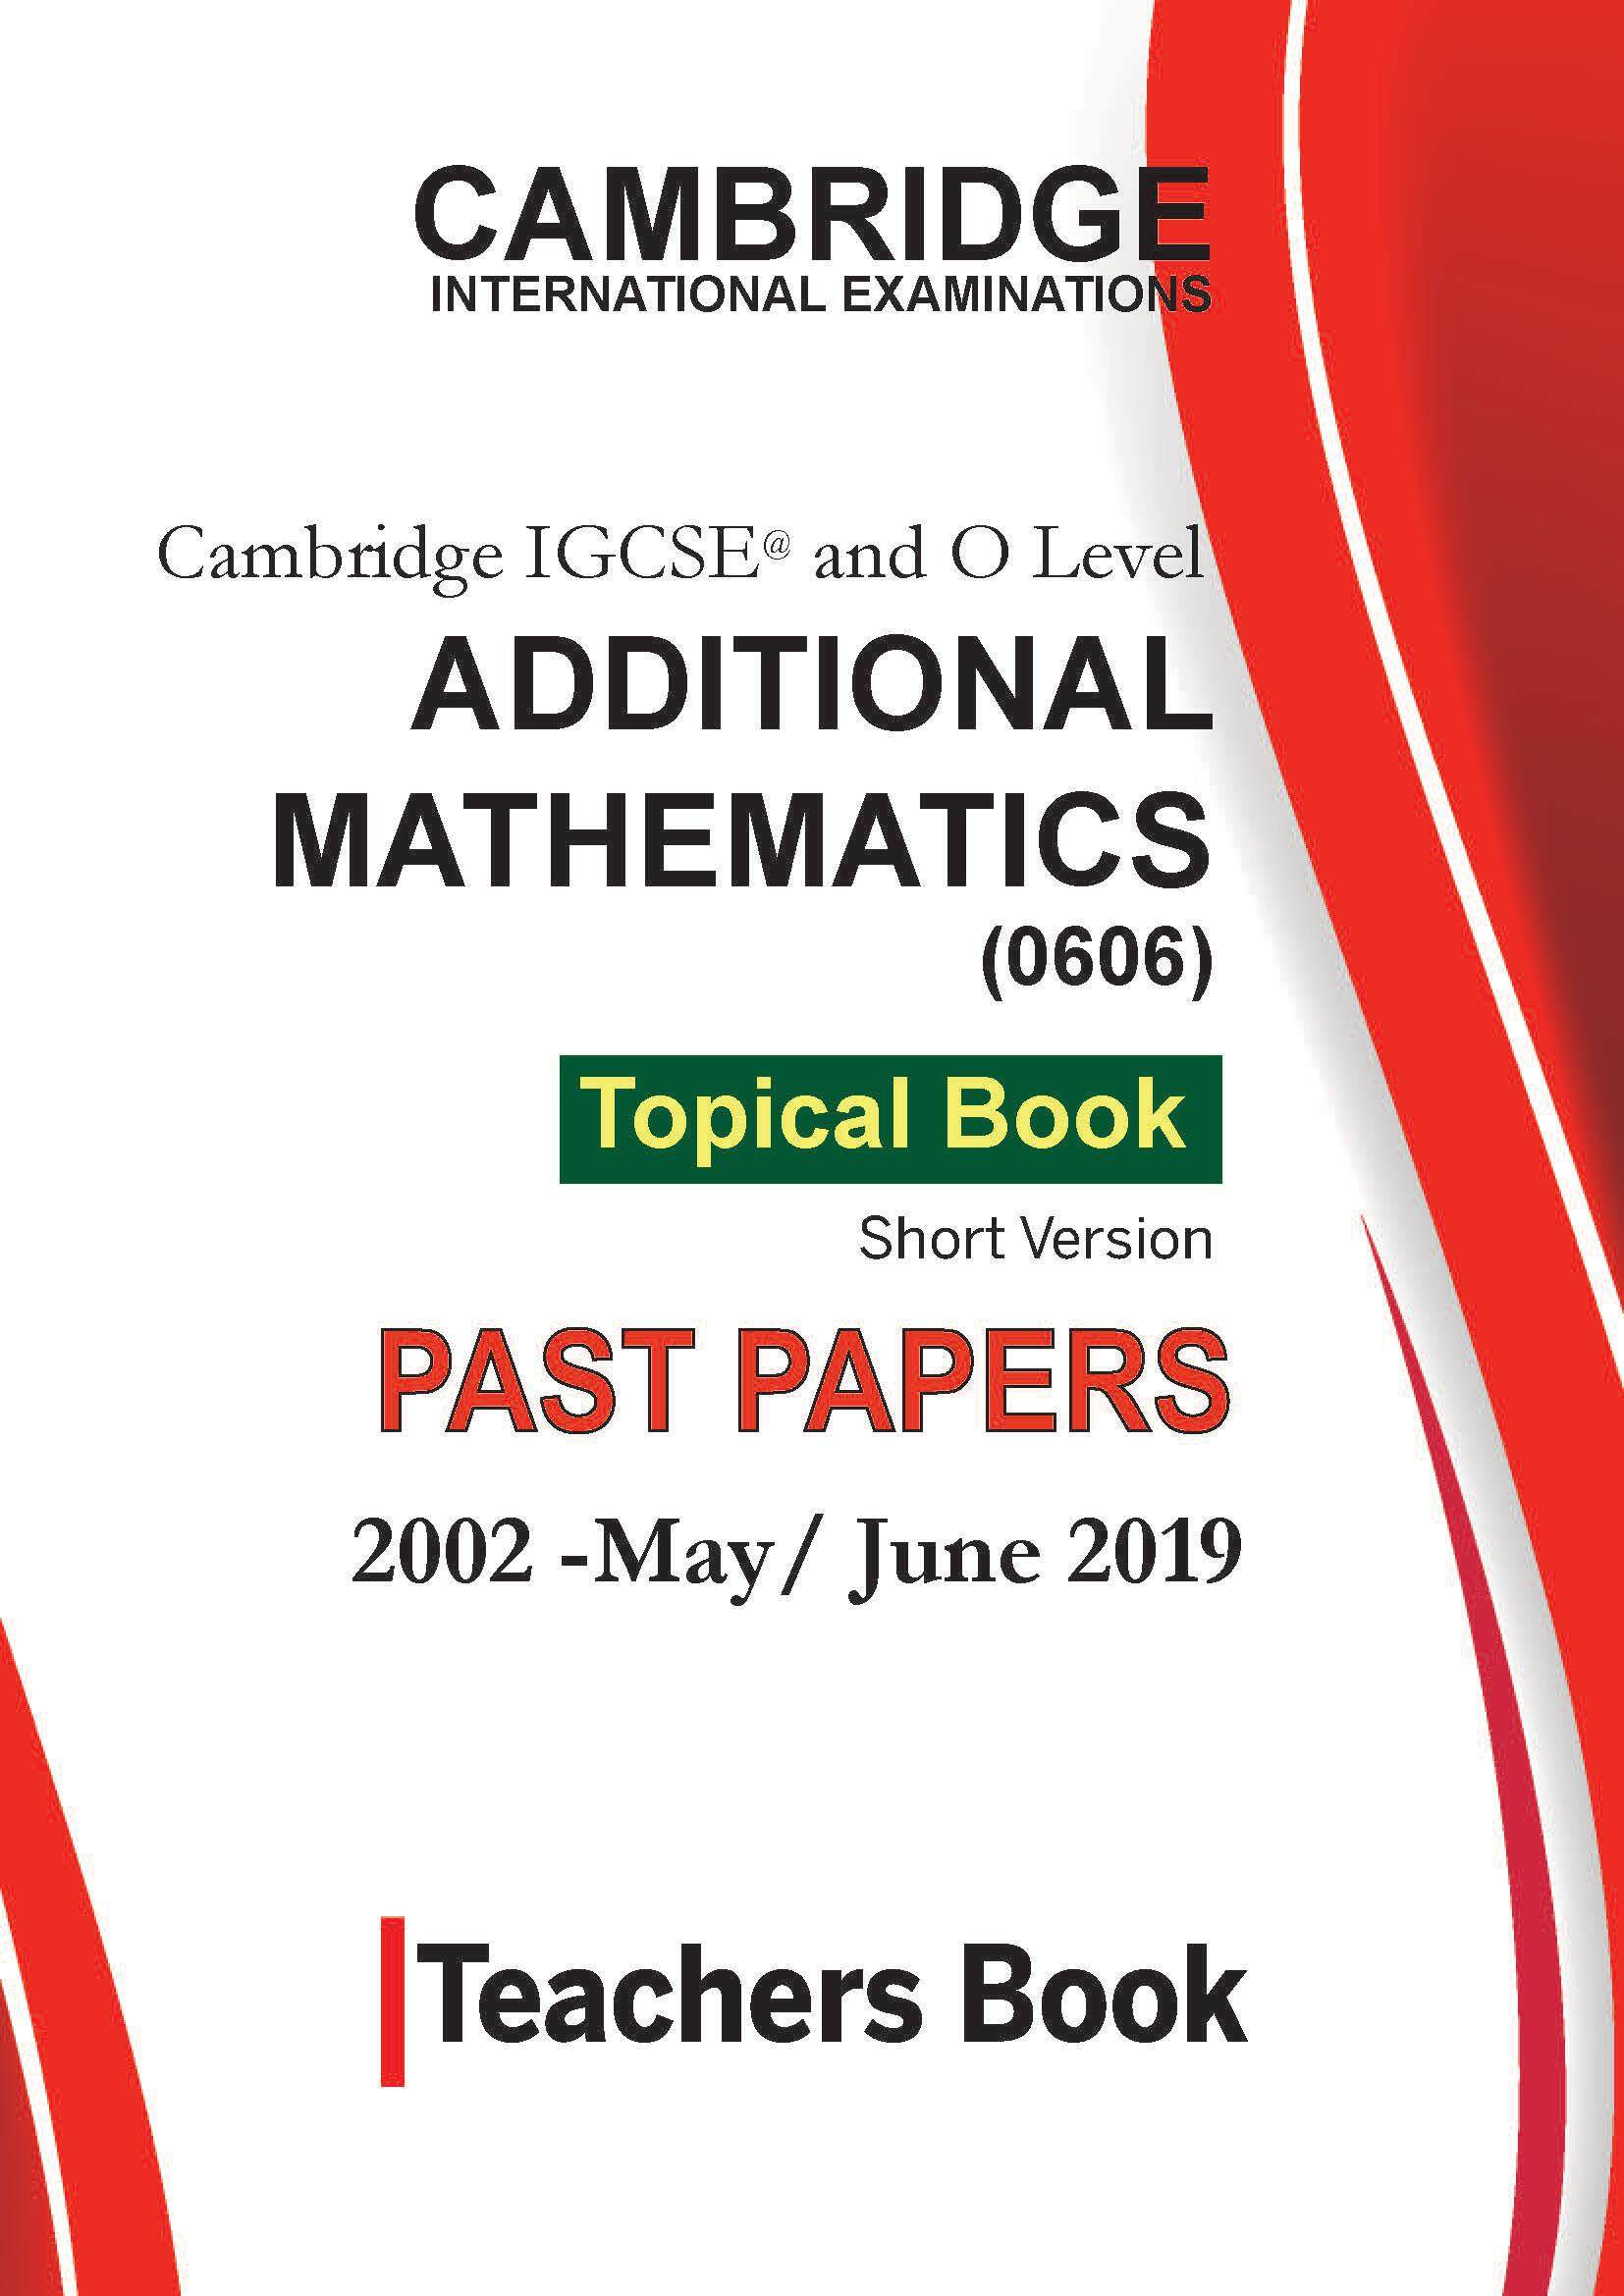 Cambridge IGCSE Additional Mathematics (0606)-Topical Past Papers [Paper 1 and 2]-Teacher's Book- Mega Pack- [Year 2002-2019]